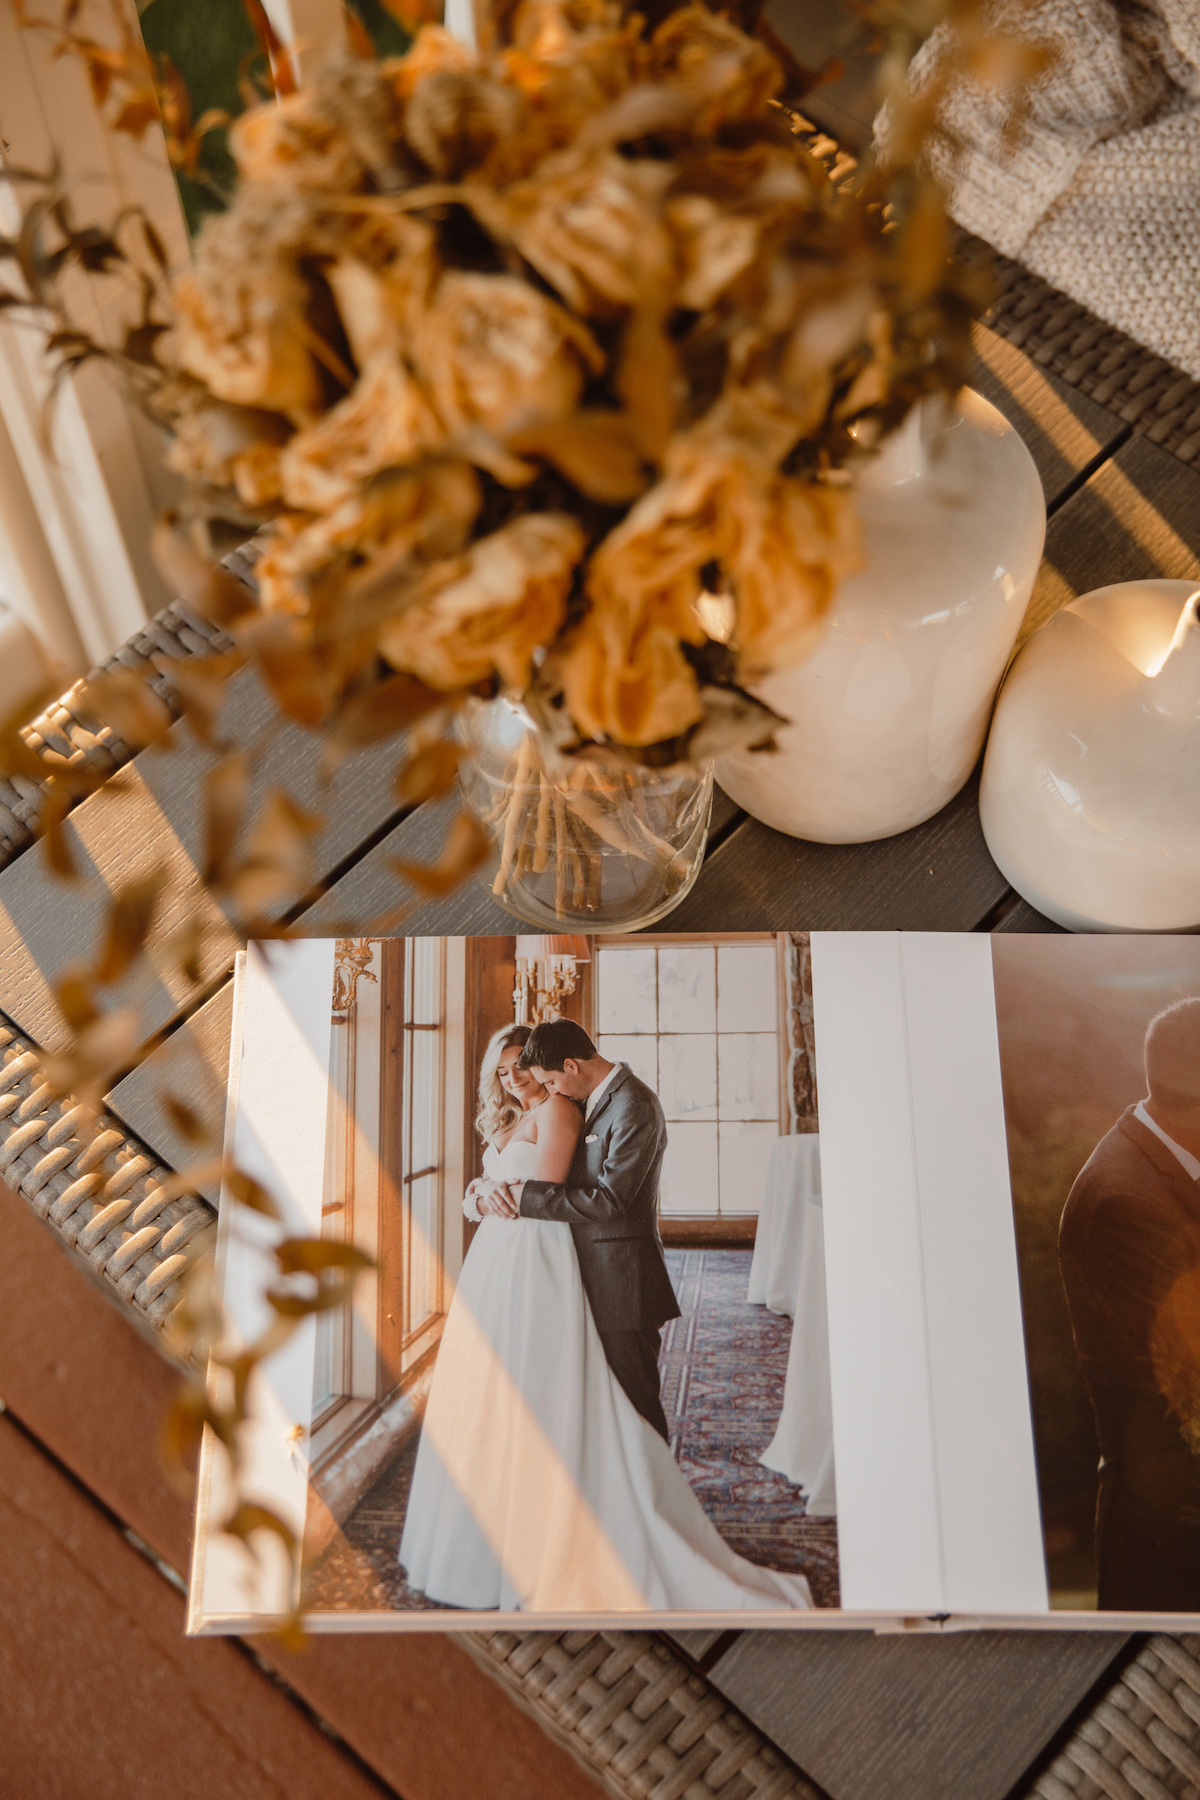 Overhead photo of dried botanicals in glass vase on side table next to Artifact Uprising Wedding Layflat Photo Album